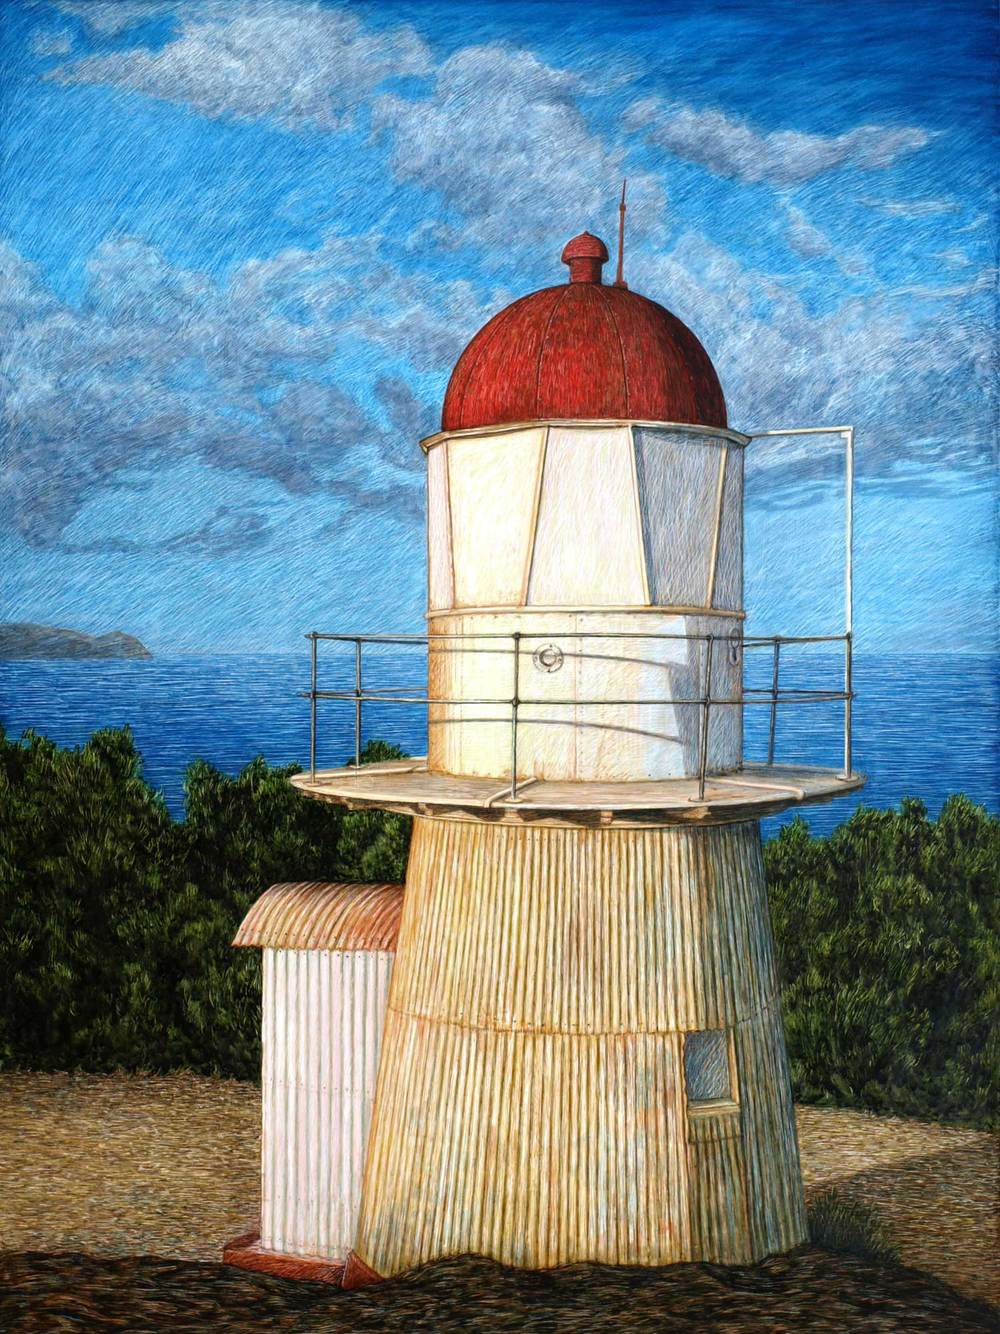 COOKTOWN LIGHTHOUSE 61 X 45.5 CM    EDITION OF 50 PIGMENT ON COTTON RAG PAPER $1,000